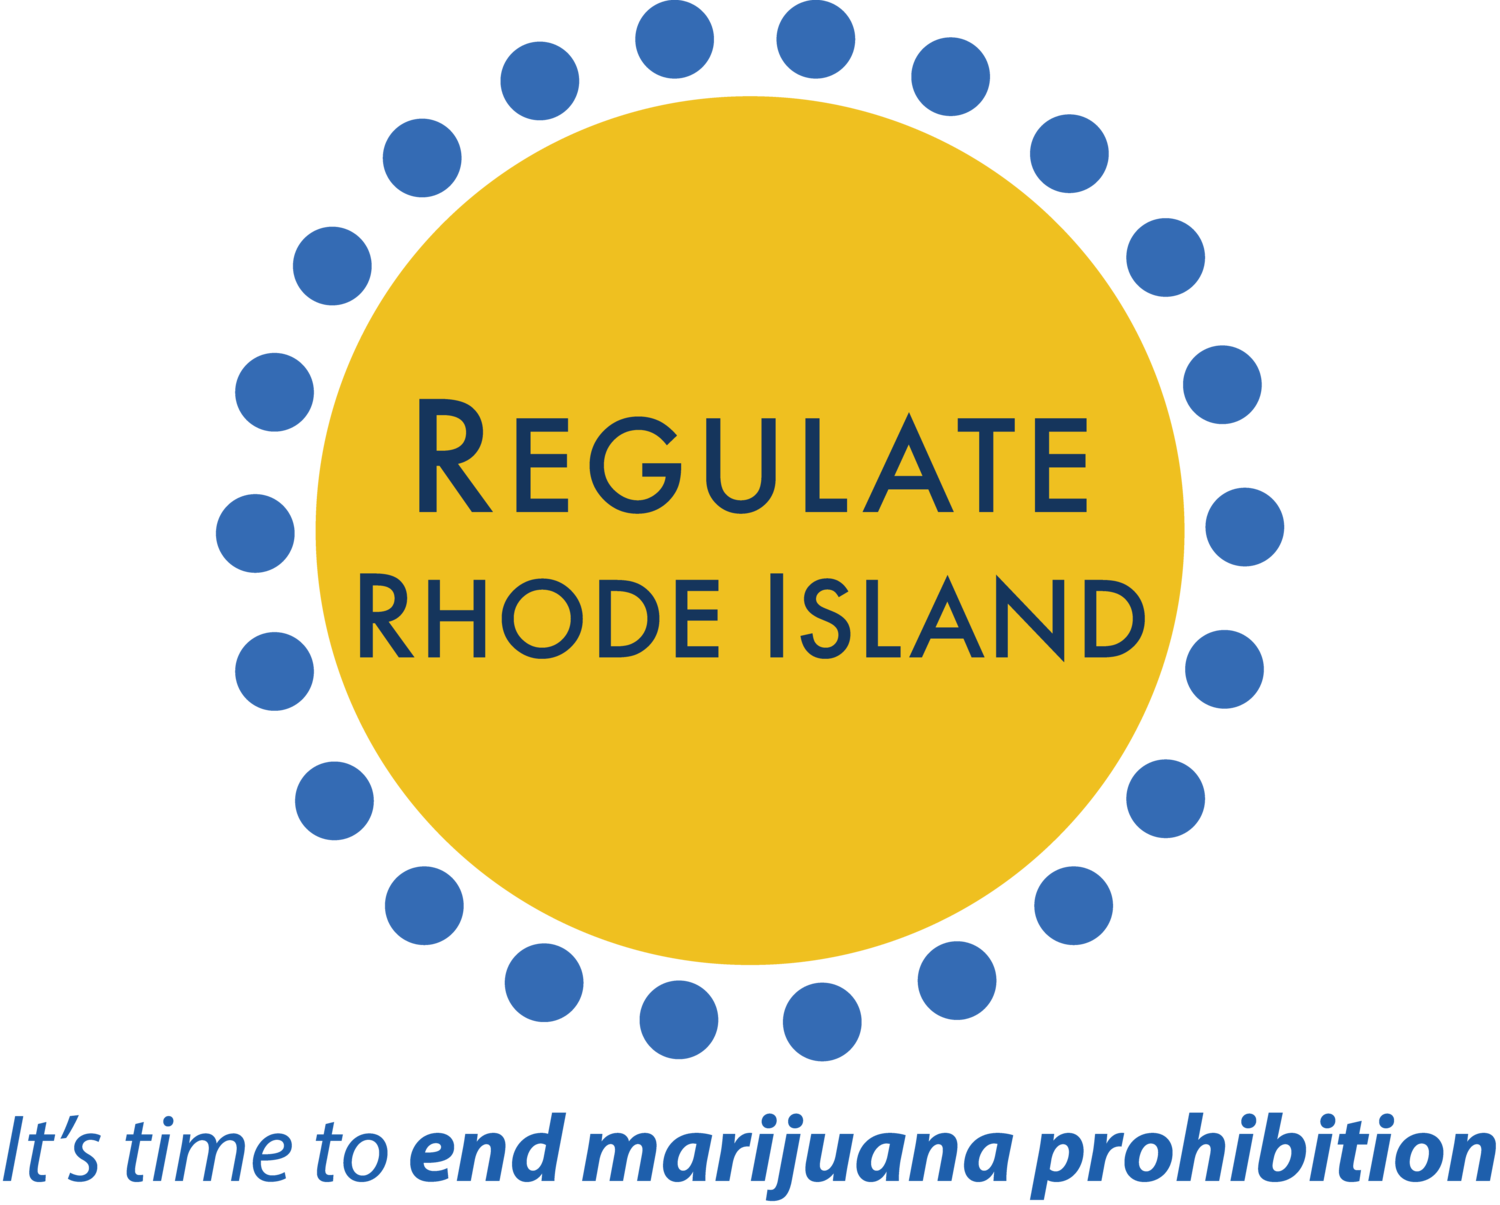 regulate ri